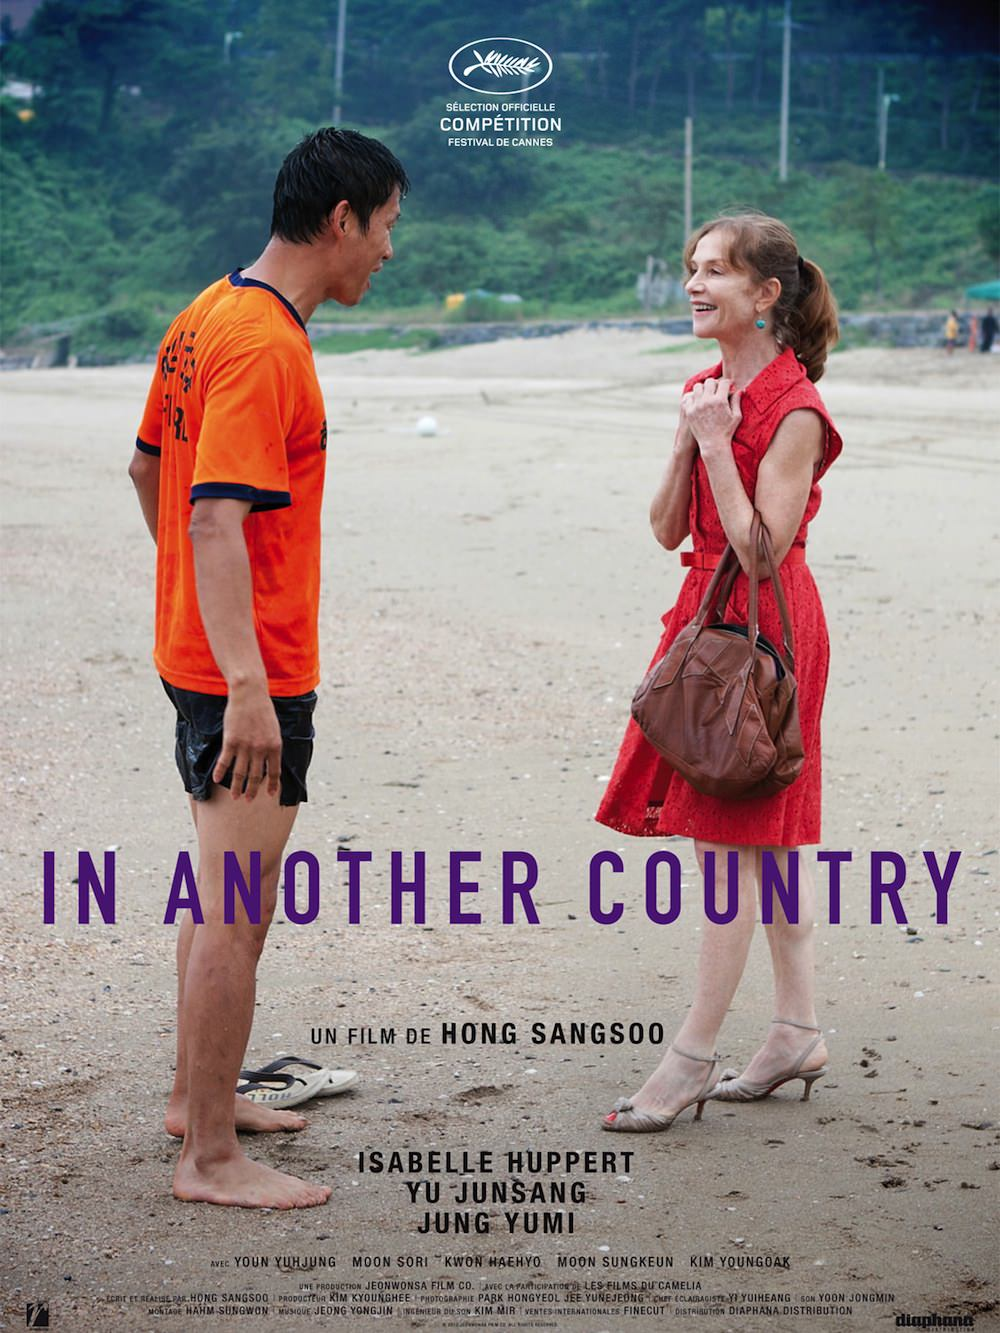 In another country sang soo